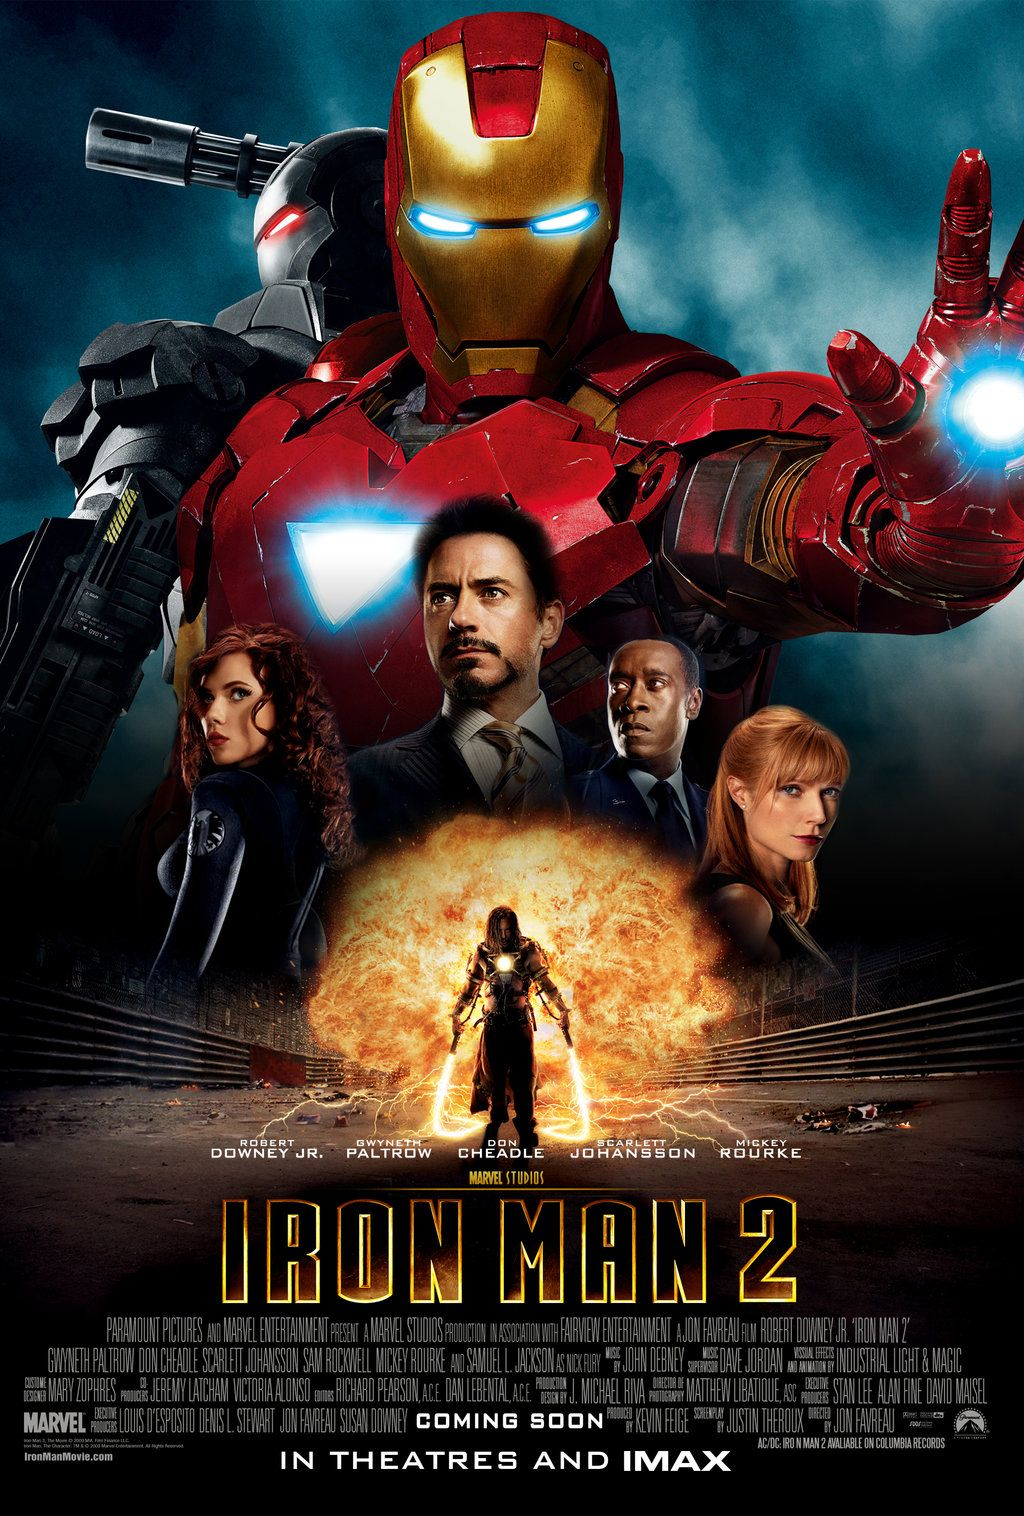 Image result for Iron Man 2 poster 1080p